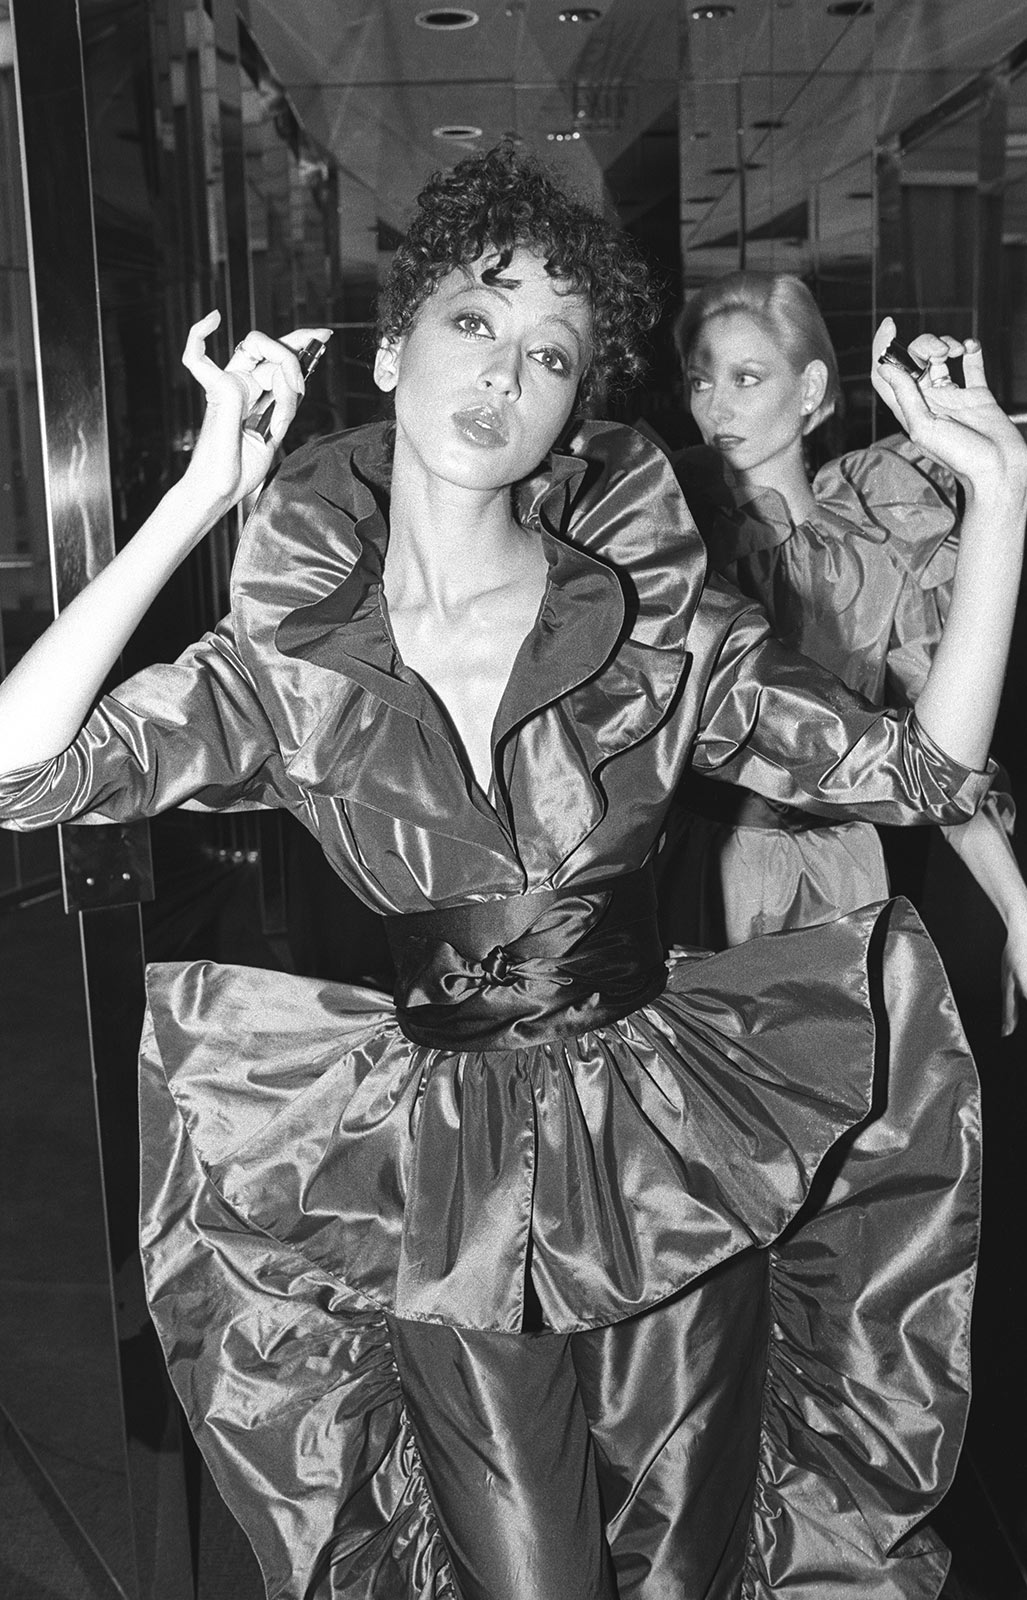 A glimpse inside the glamorous heyday of Halston